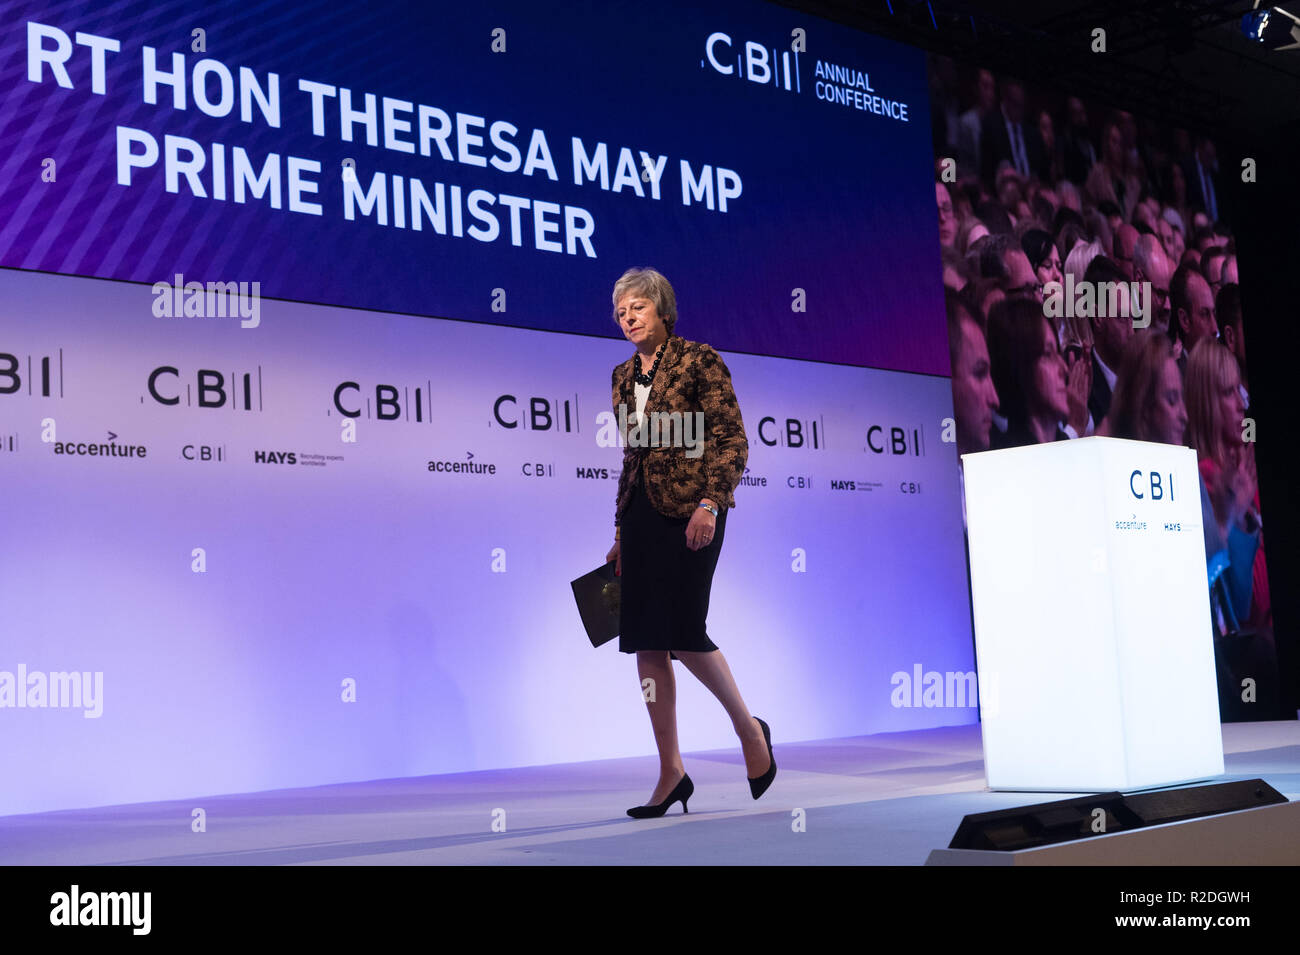 London, Britain. 19th Nov, 2018. British Prime Minister Theresa May leaves after delivering a keynote speech at the annual conference of the Confederation of British Industry (CBI) in London, Britain, on Nov. 19, 2018. Theresa May on Monday enlisted British business leaders to back her much-criticized Brexit deal, insisting that she would not make any change to the draft divorce agreement between London and Brussels. Credit: Ray Tang/Xinhua/Alamy Live News Stock Photo